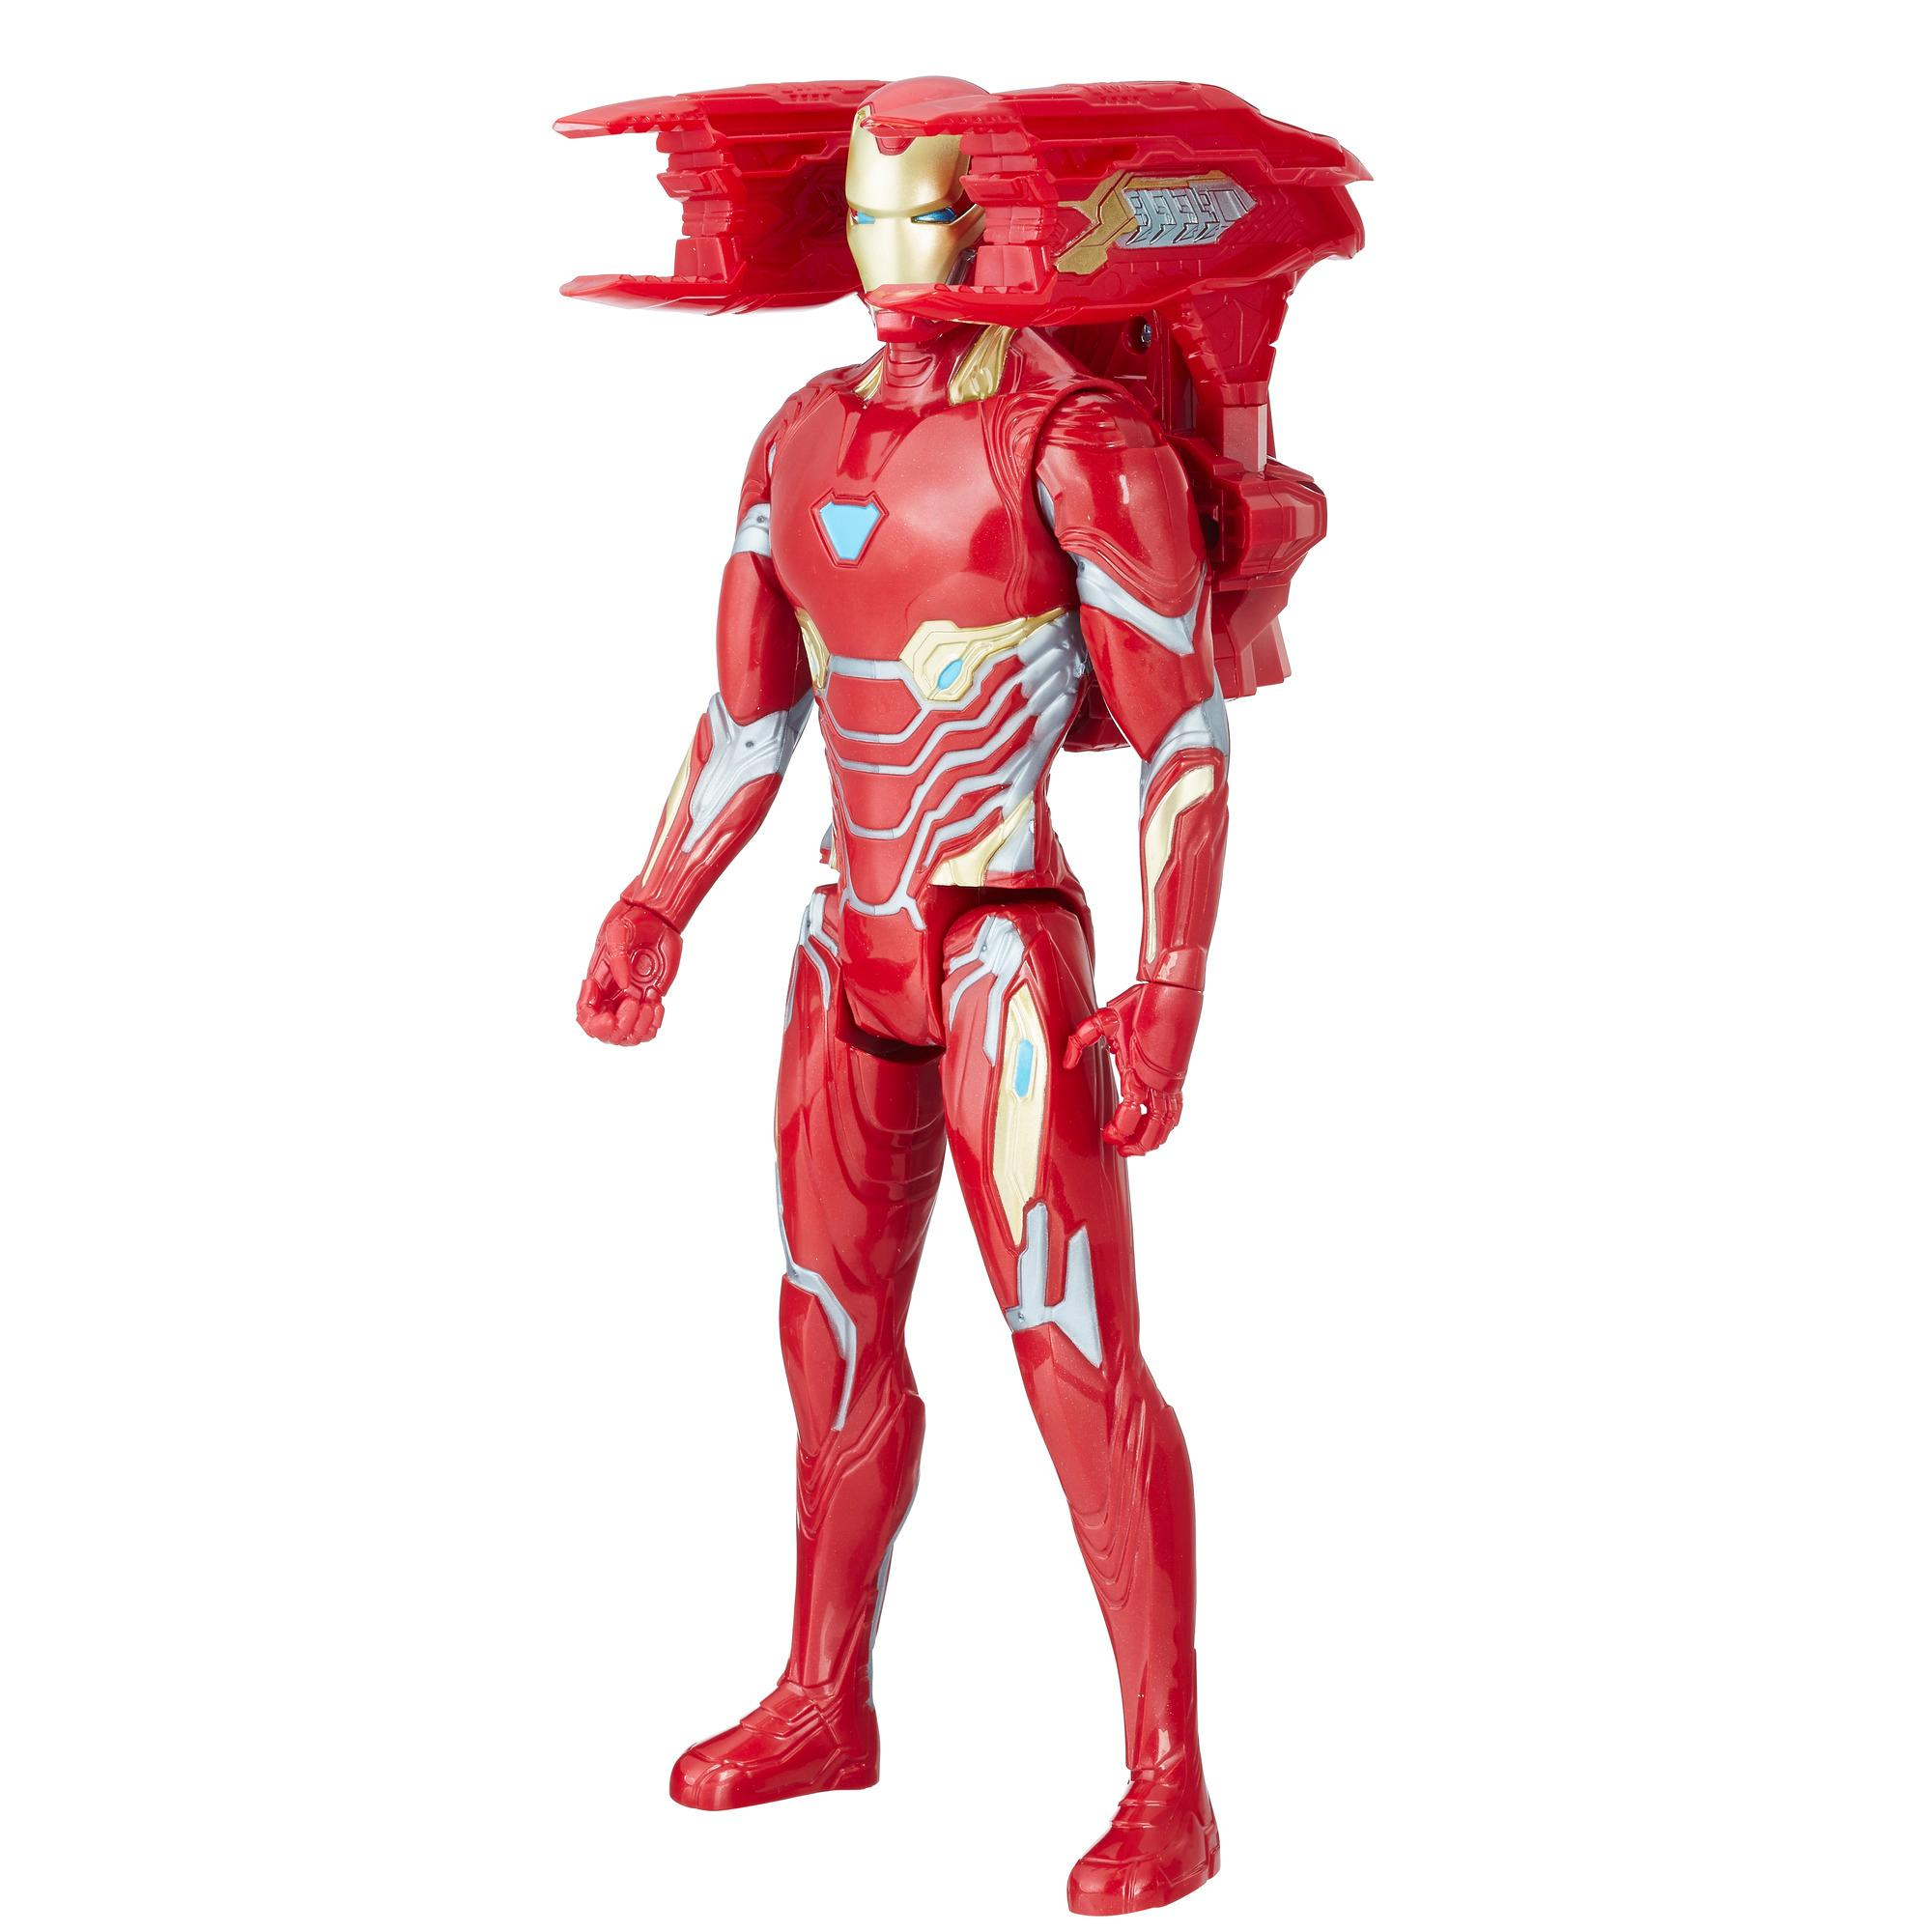 Avengers Titan Hero Power FX Iron Man mit Power FX Pack